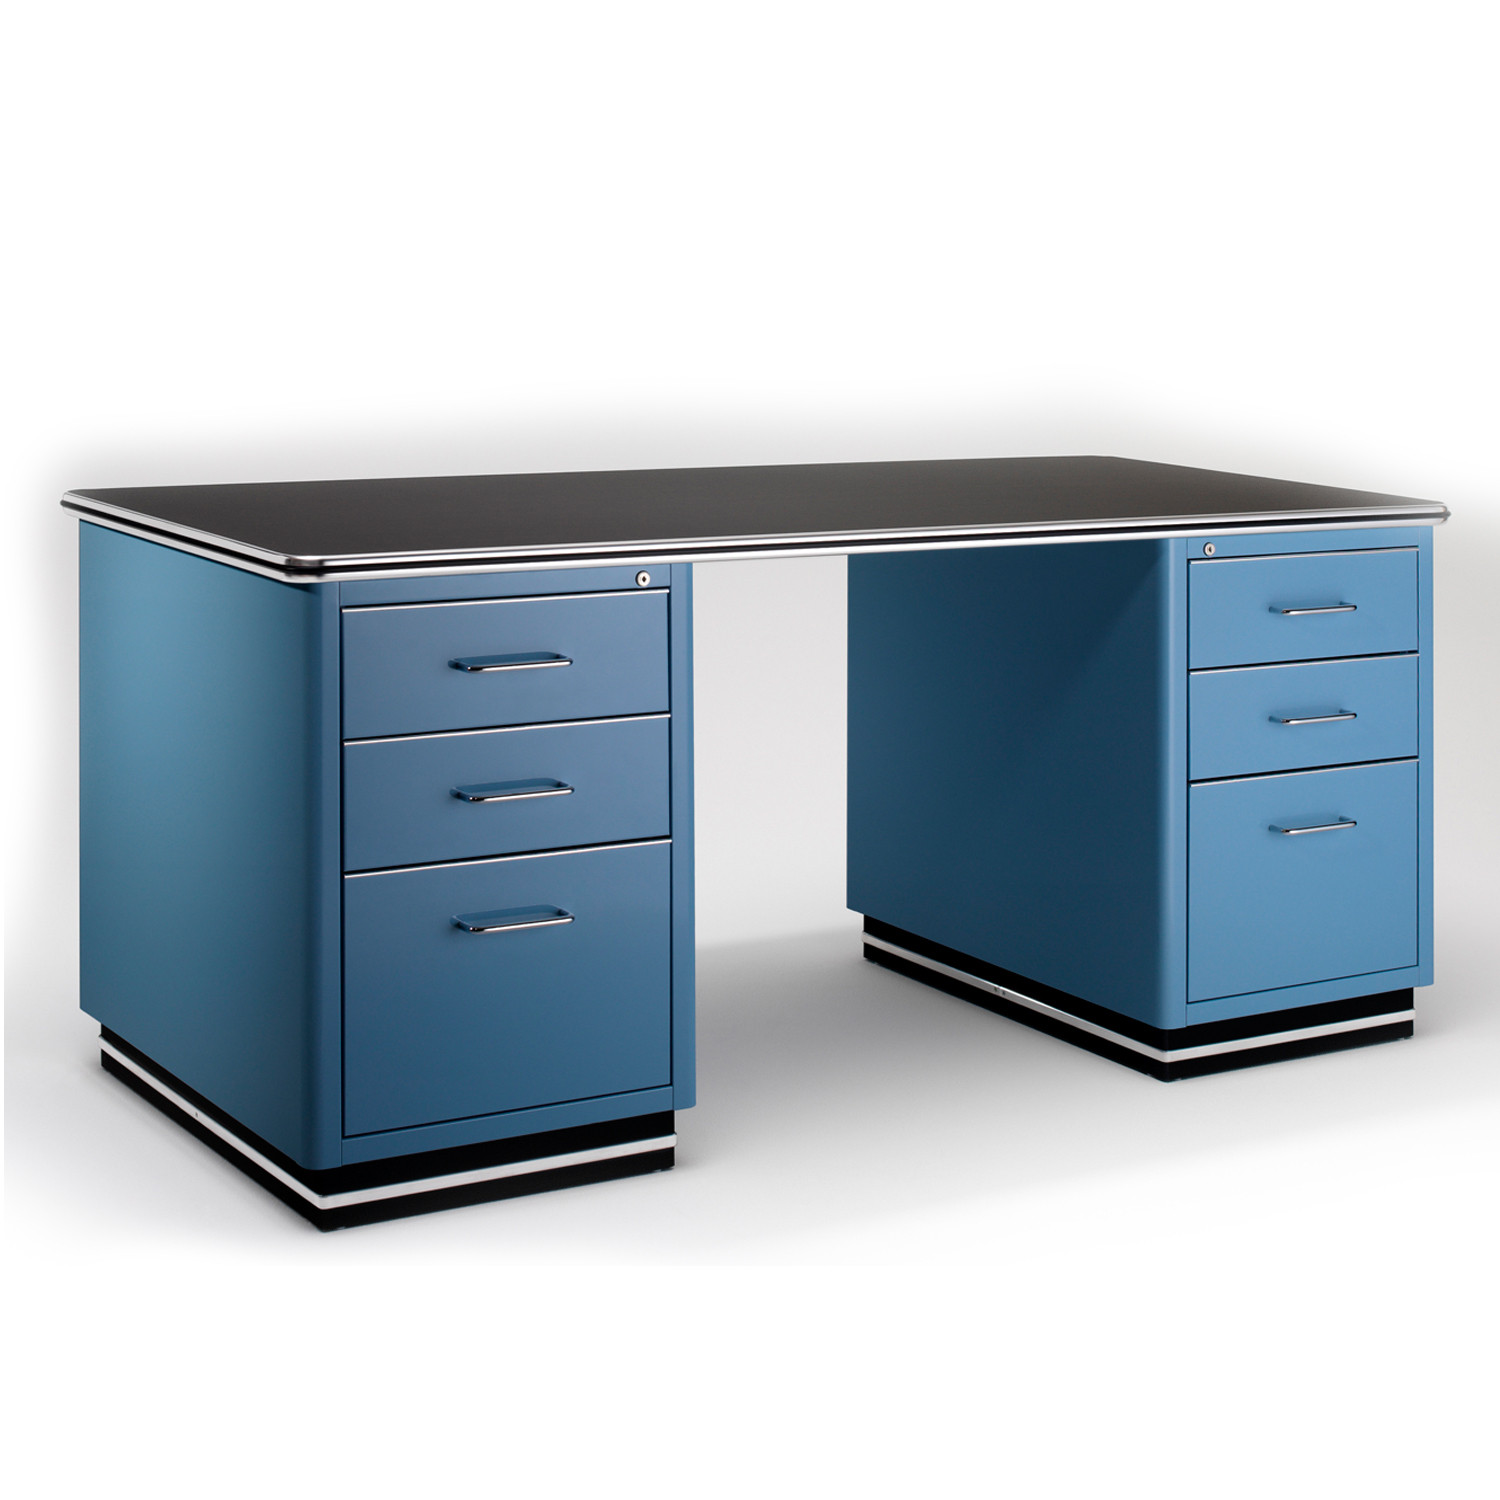 TB 228 Office Furniture